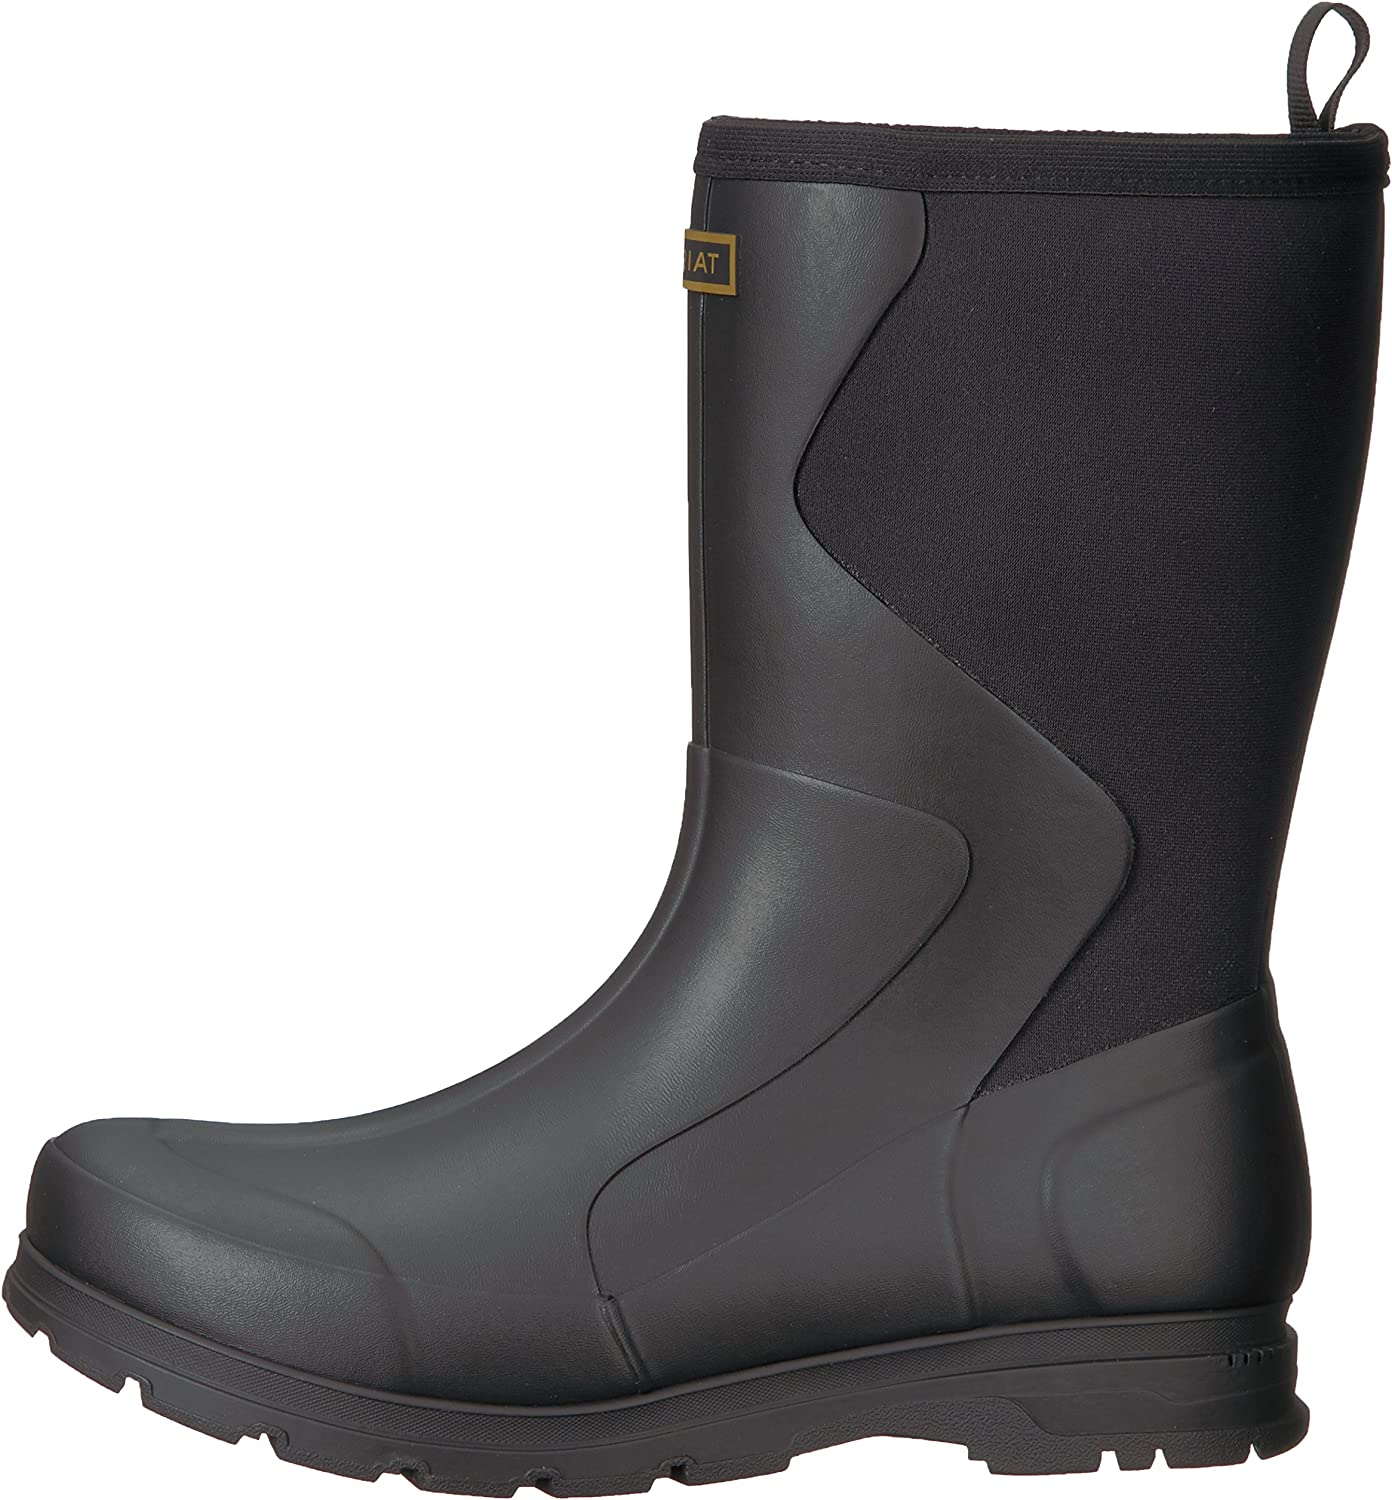 Ariat Mens Rubber Outdoor Boot